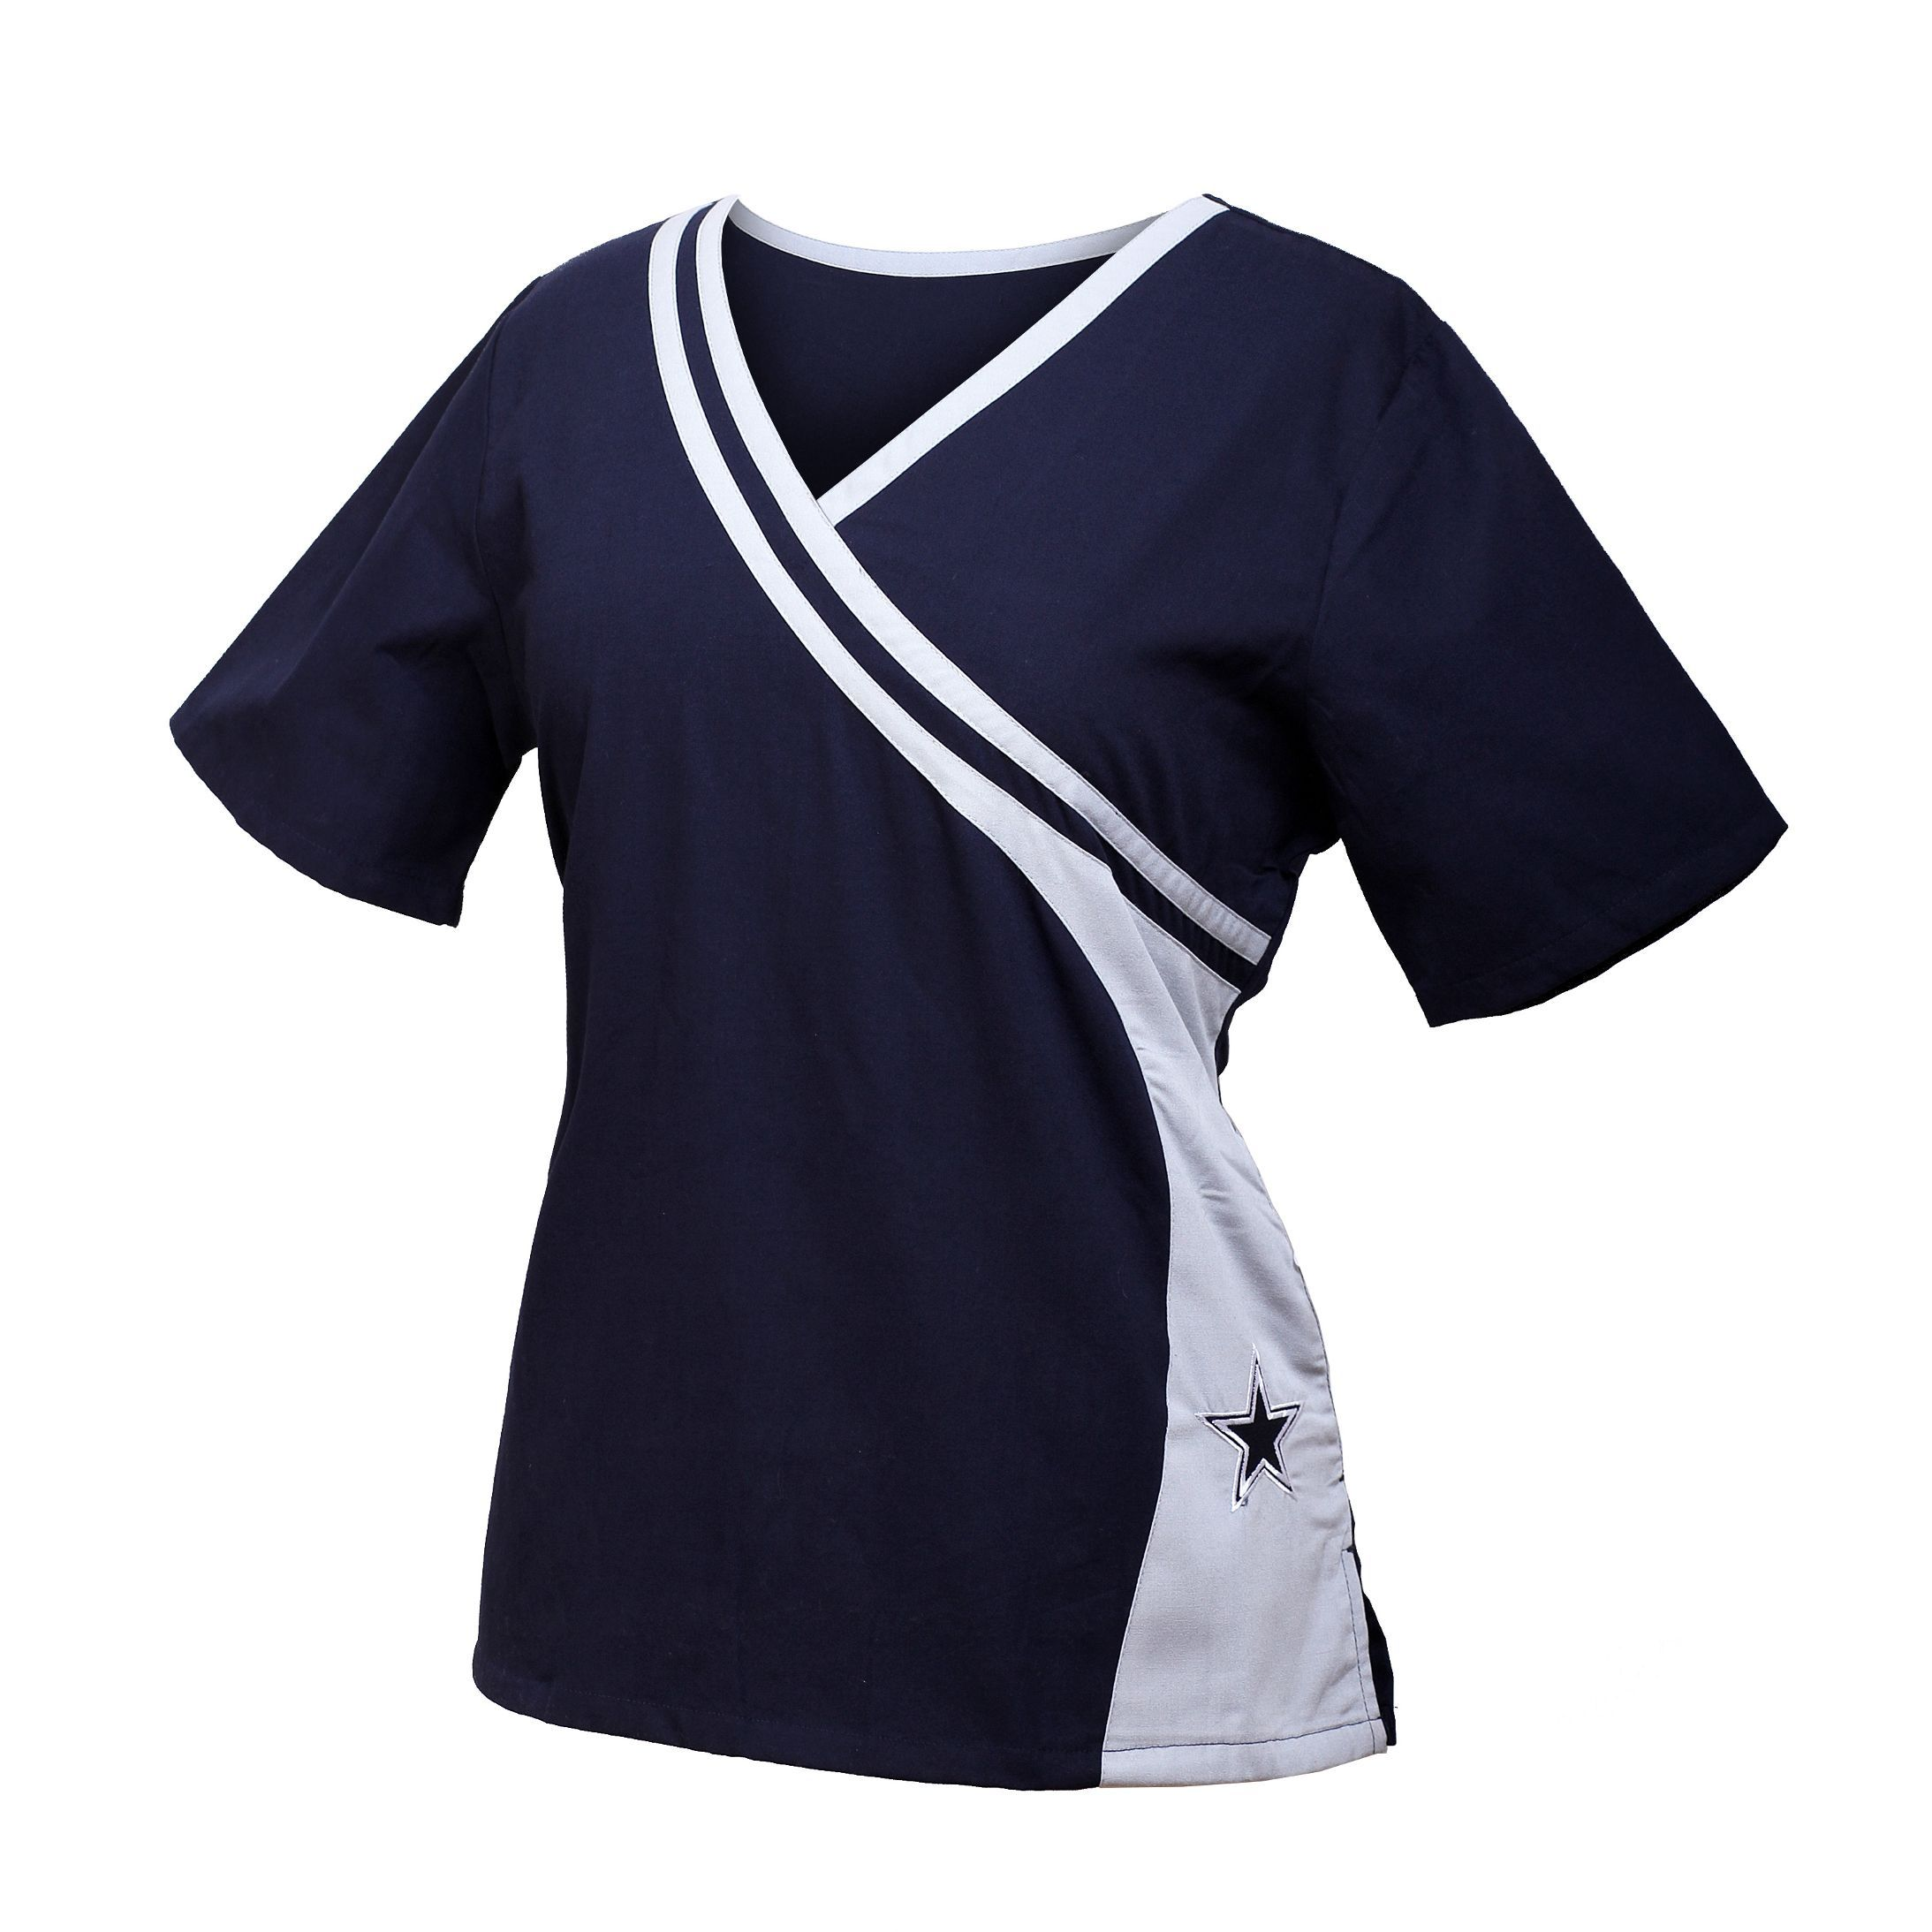 6773a283c14 Dallas Cowboys NEW Women's NFL Scrub Top | Dallas Cowboys Scrubs ...